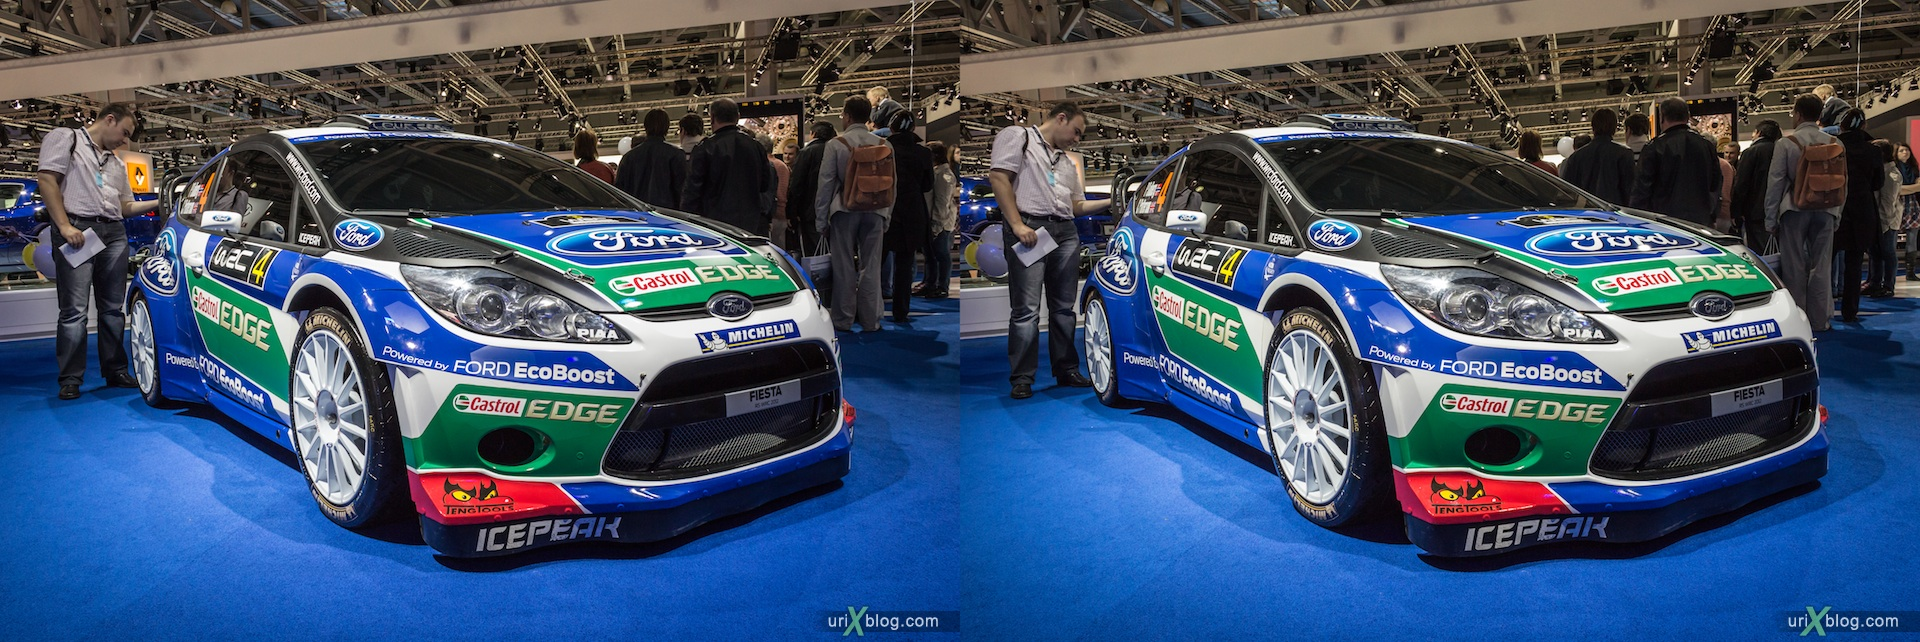 2012, Ford Fiesta, Moscow International Automobile Salon, auto show, 3D, stereo pair, cross-eyed, crossview